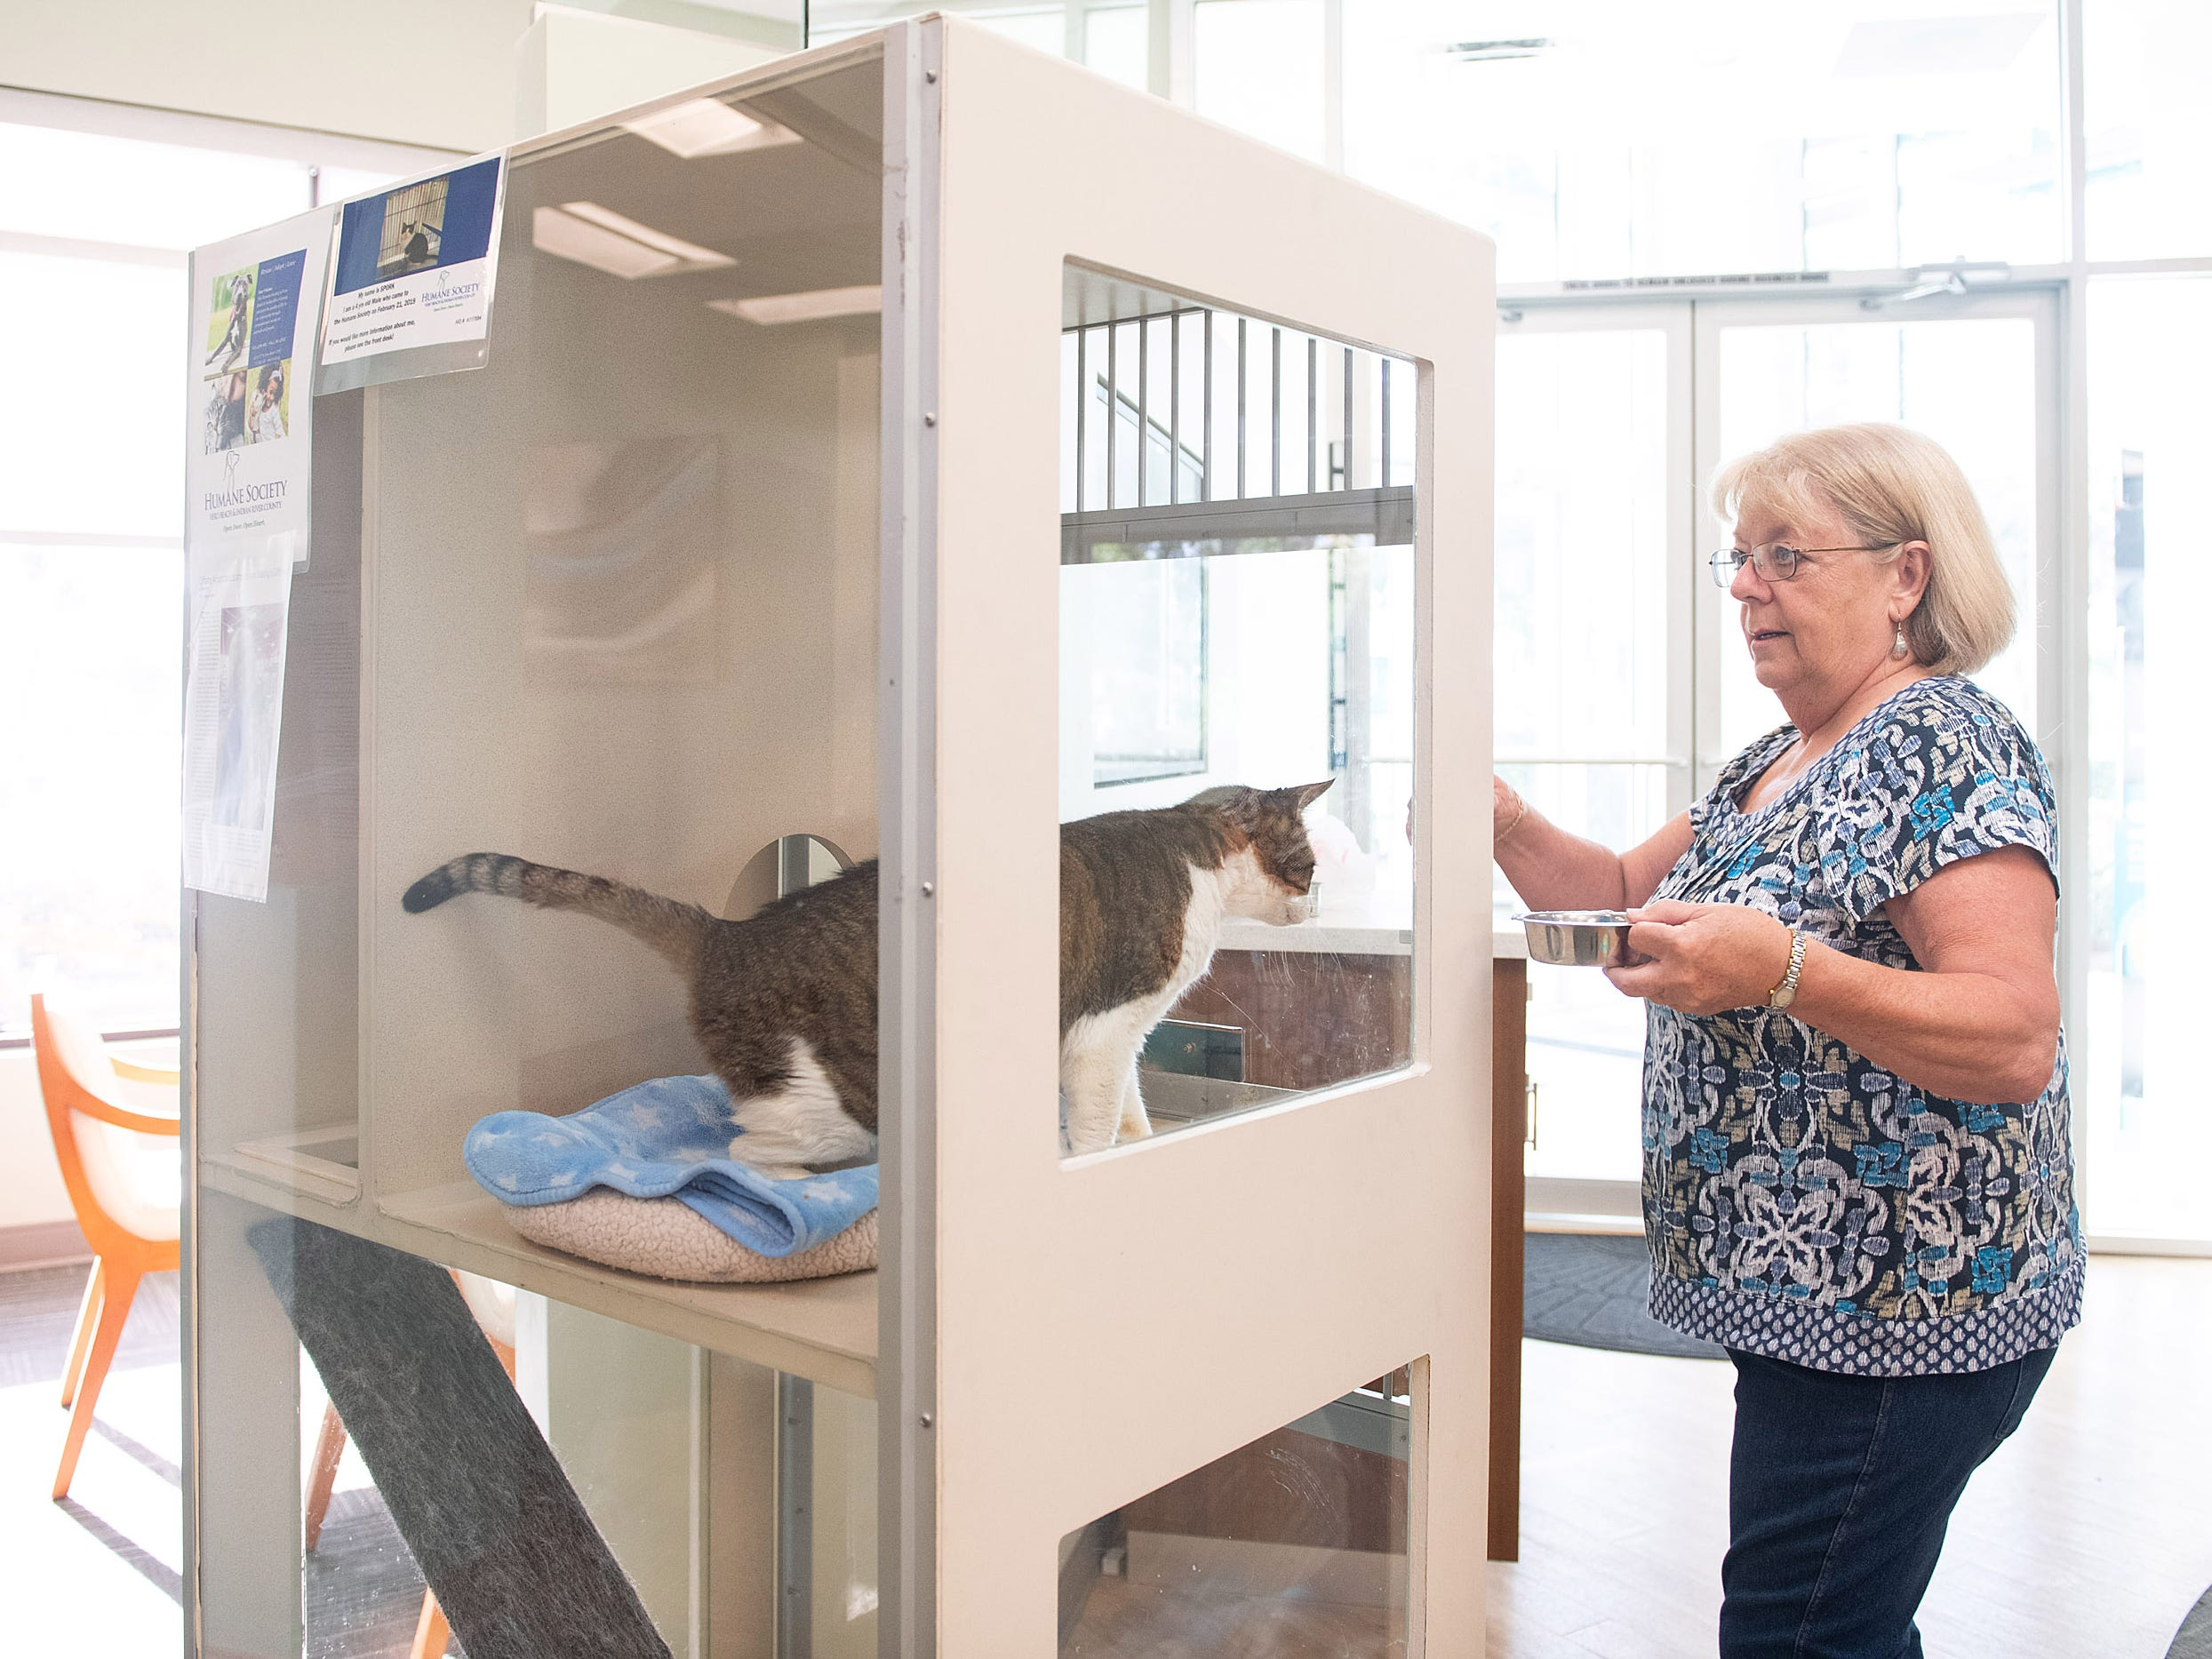 Barbara Herring, a volunteer with the Humane Society of Vero Beach and Indian River County, feeds Spork, a four-year-old male cat that is up for adoption at the Seacoast Bank at 6030 20th Street, on Wednesday, May 8, 2019 in Vero Beach. The animal shelter has partnered with Seacoast Bank to host a new adoptable cat every week at the Seacoast Bank. Seacoast Bank received their first cat up for adoption from the Humane Society of Vero Beach and Indian River County in October and since then they have had 18 cats adopted from their location.